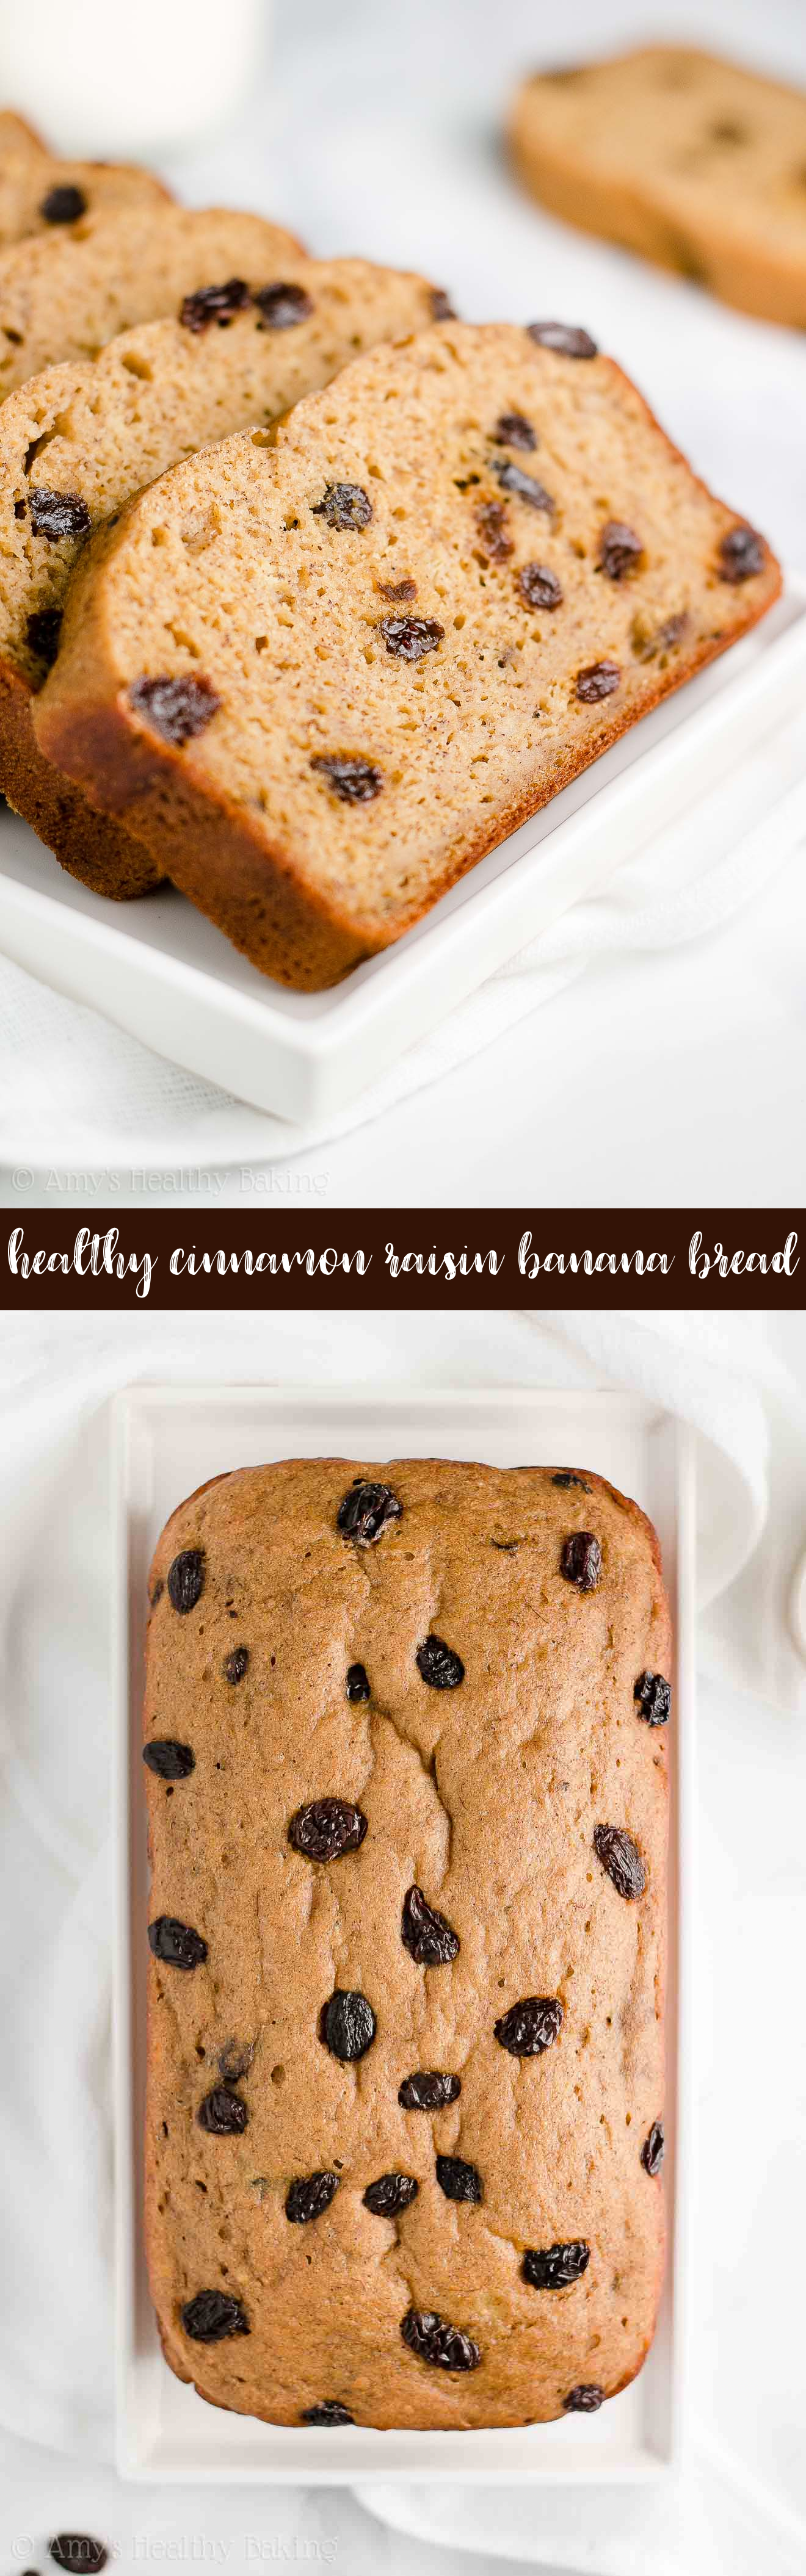 Best Healthy No Sugar Cinnamon Raisin Banana Bread